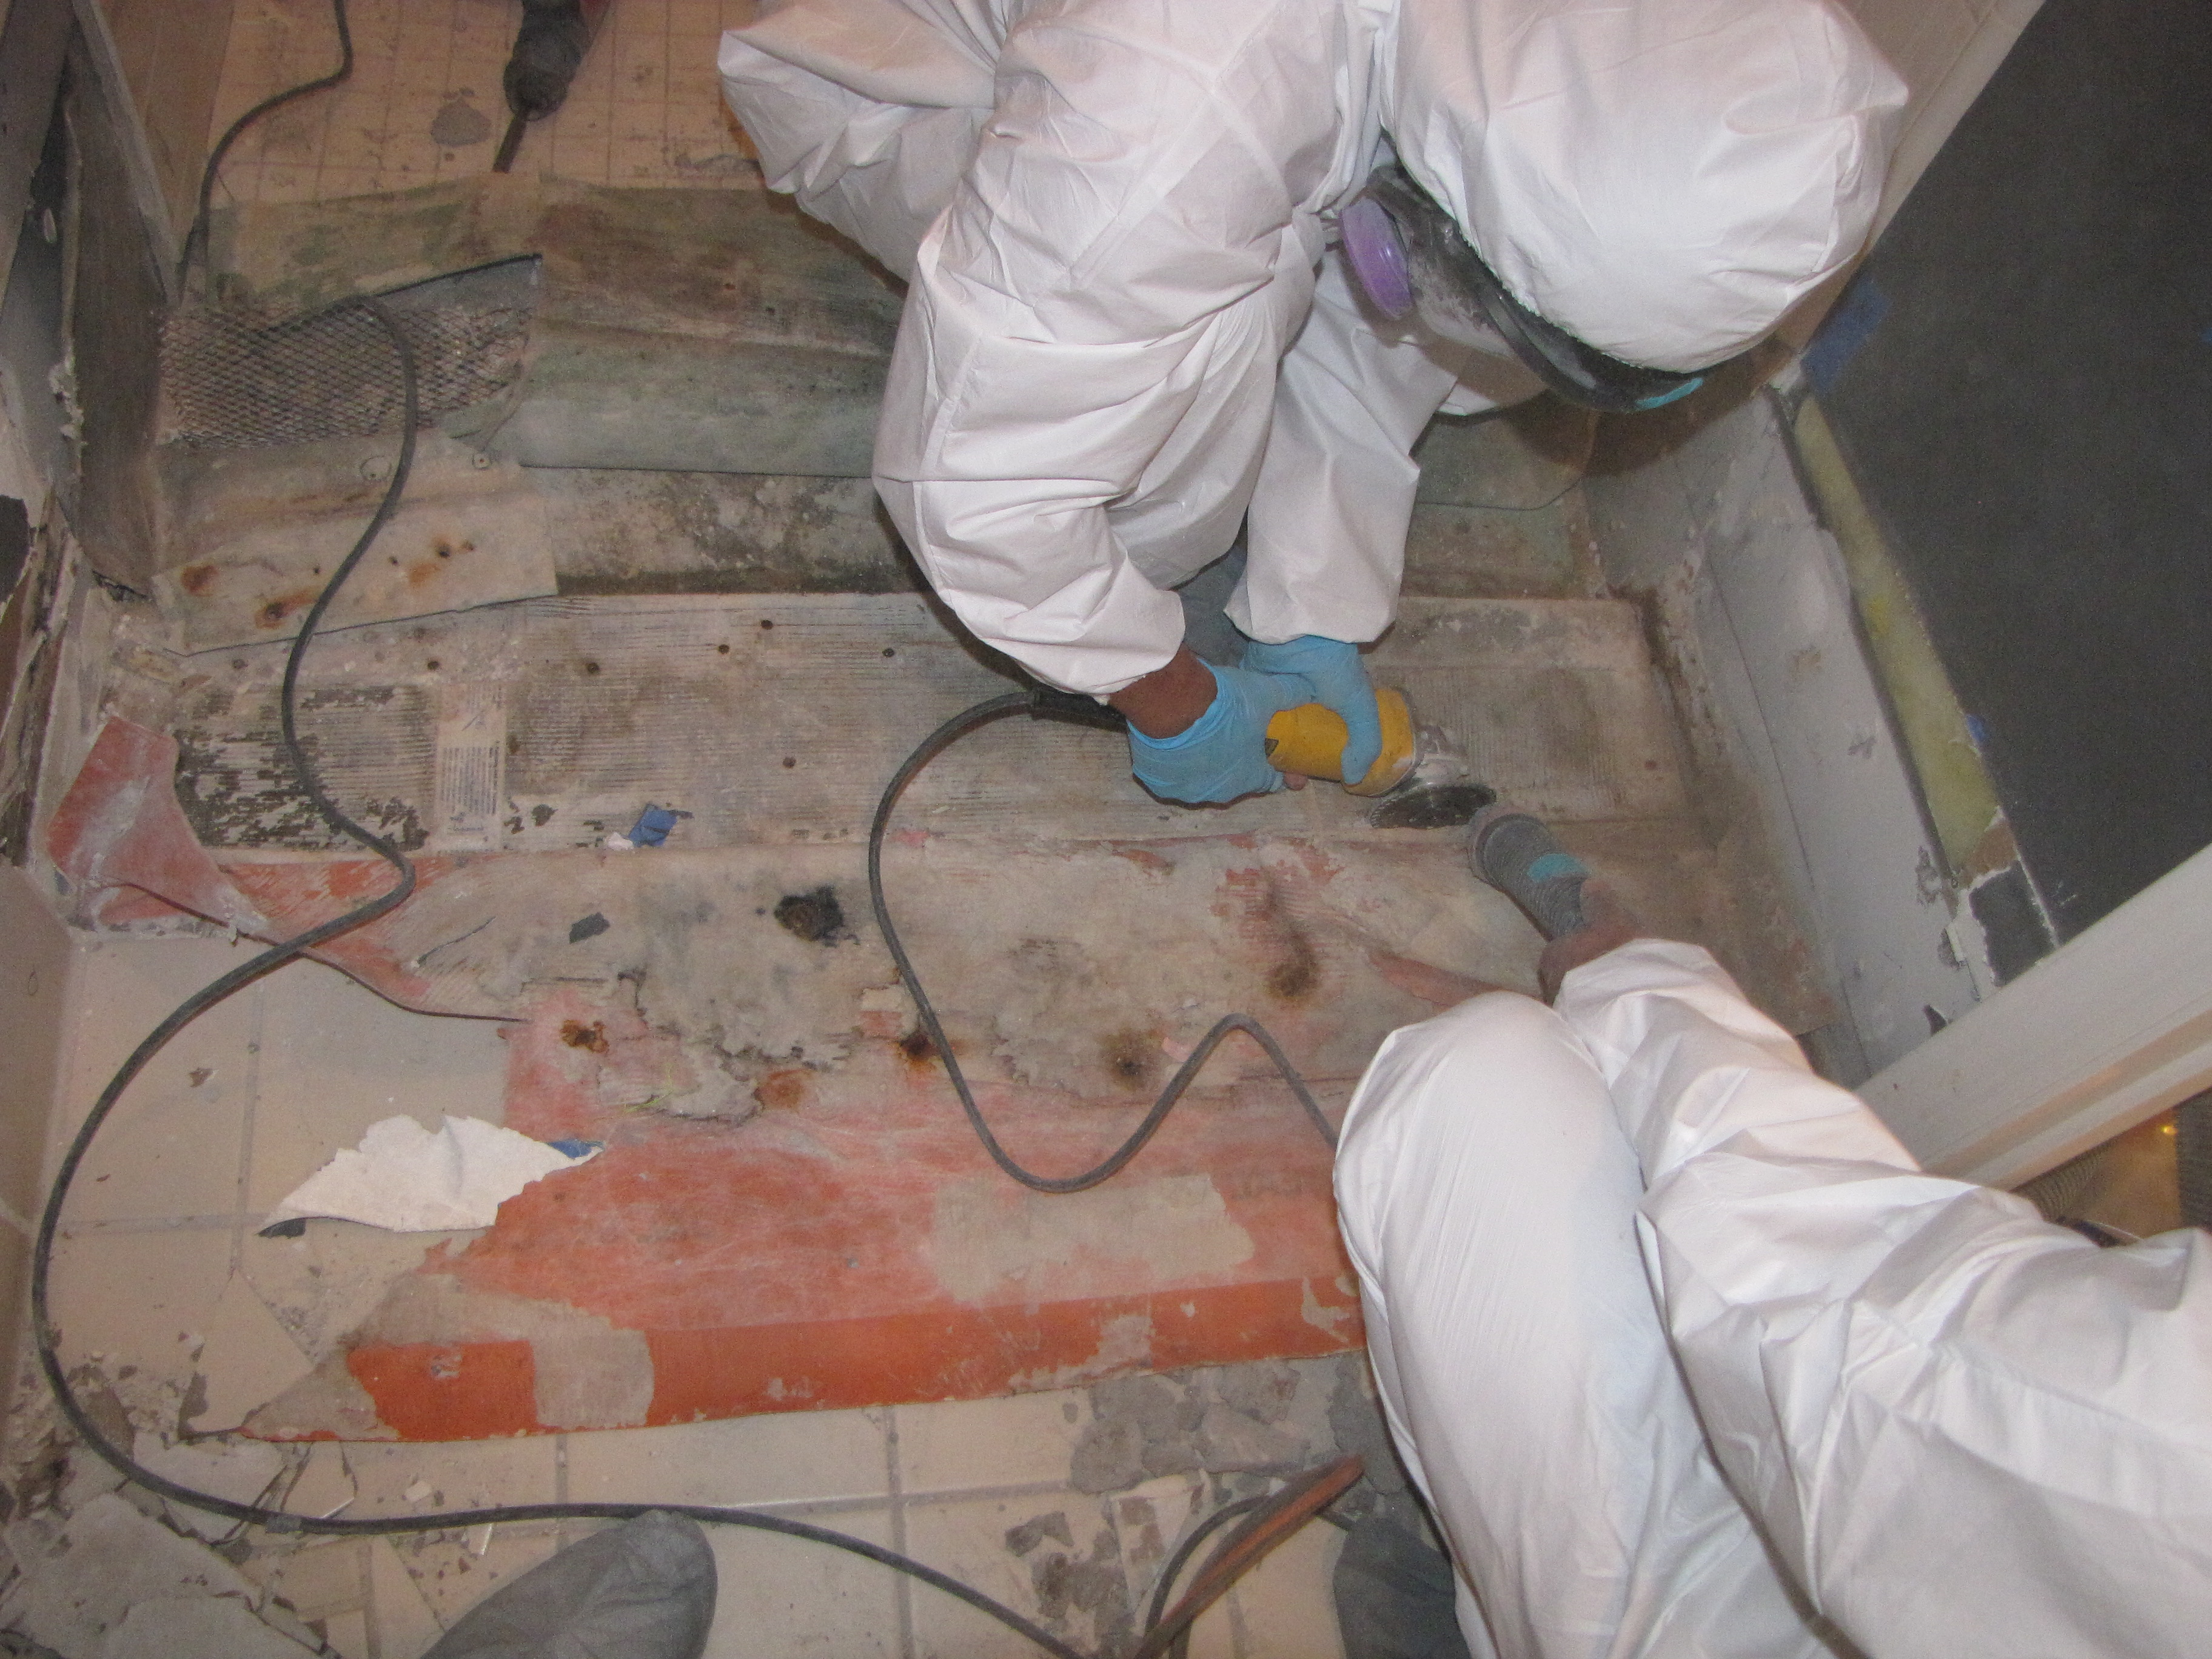 Bathroom Leaking To Floor Below : Investigation of leaking shower and mold growth ctasc